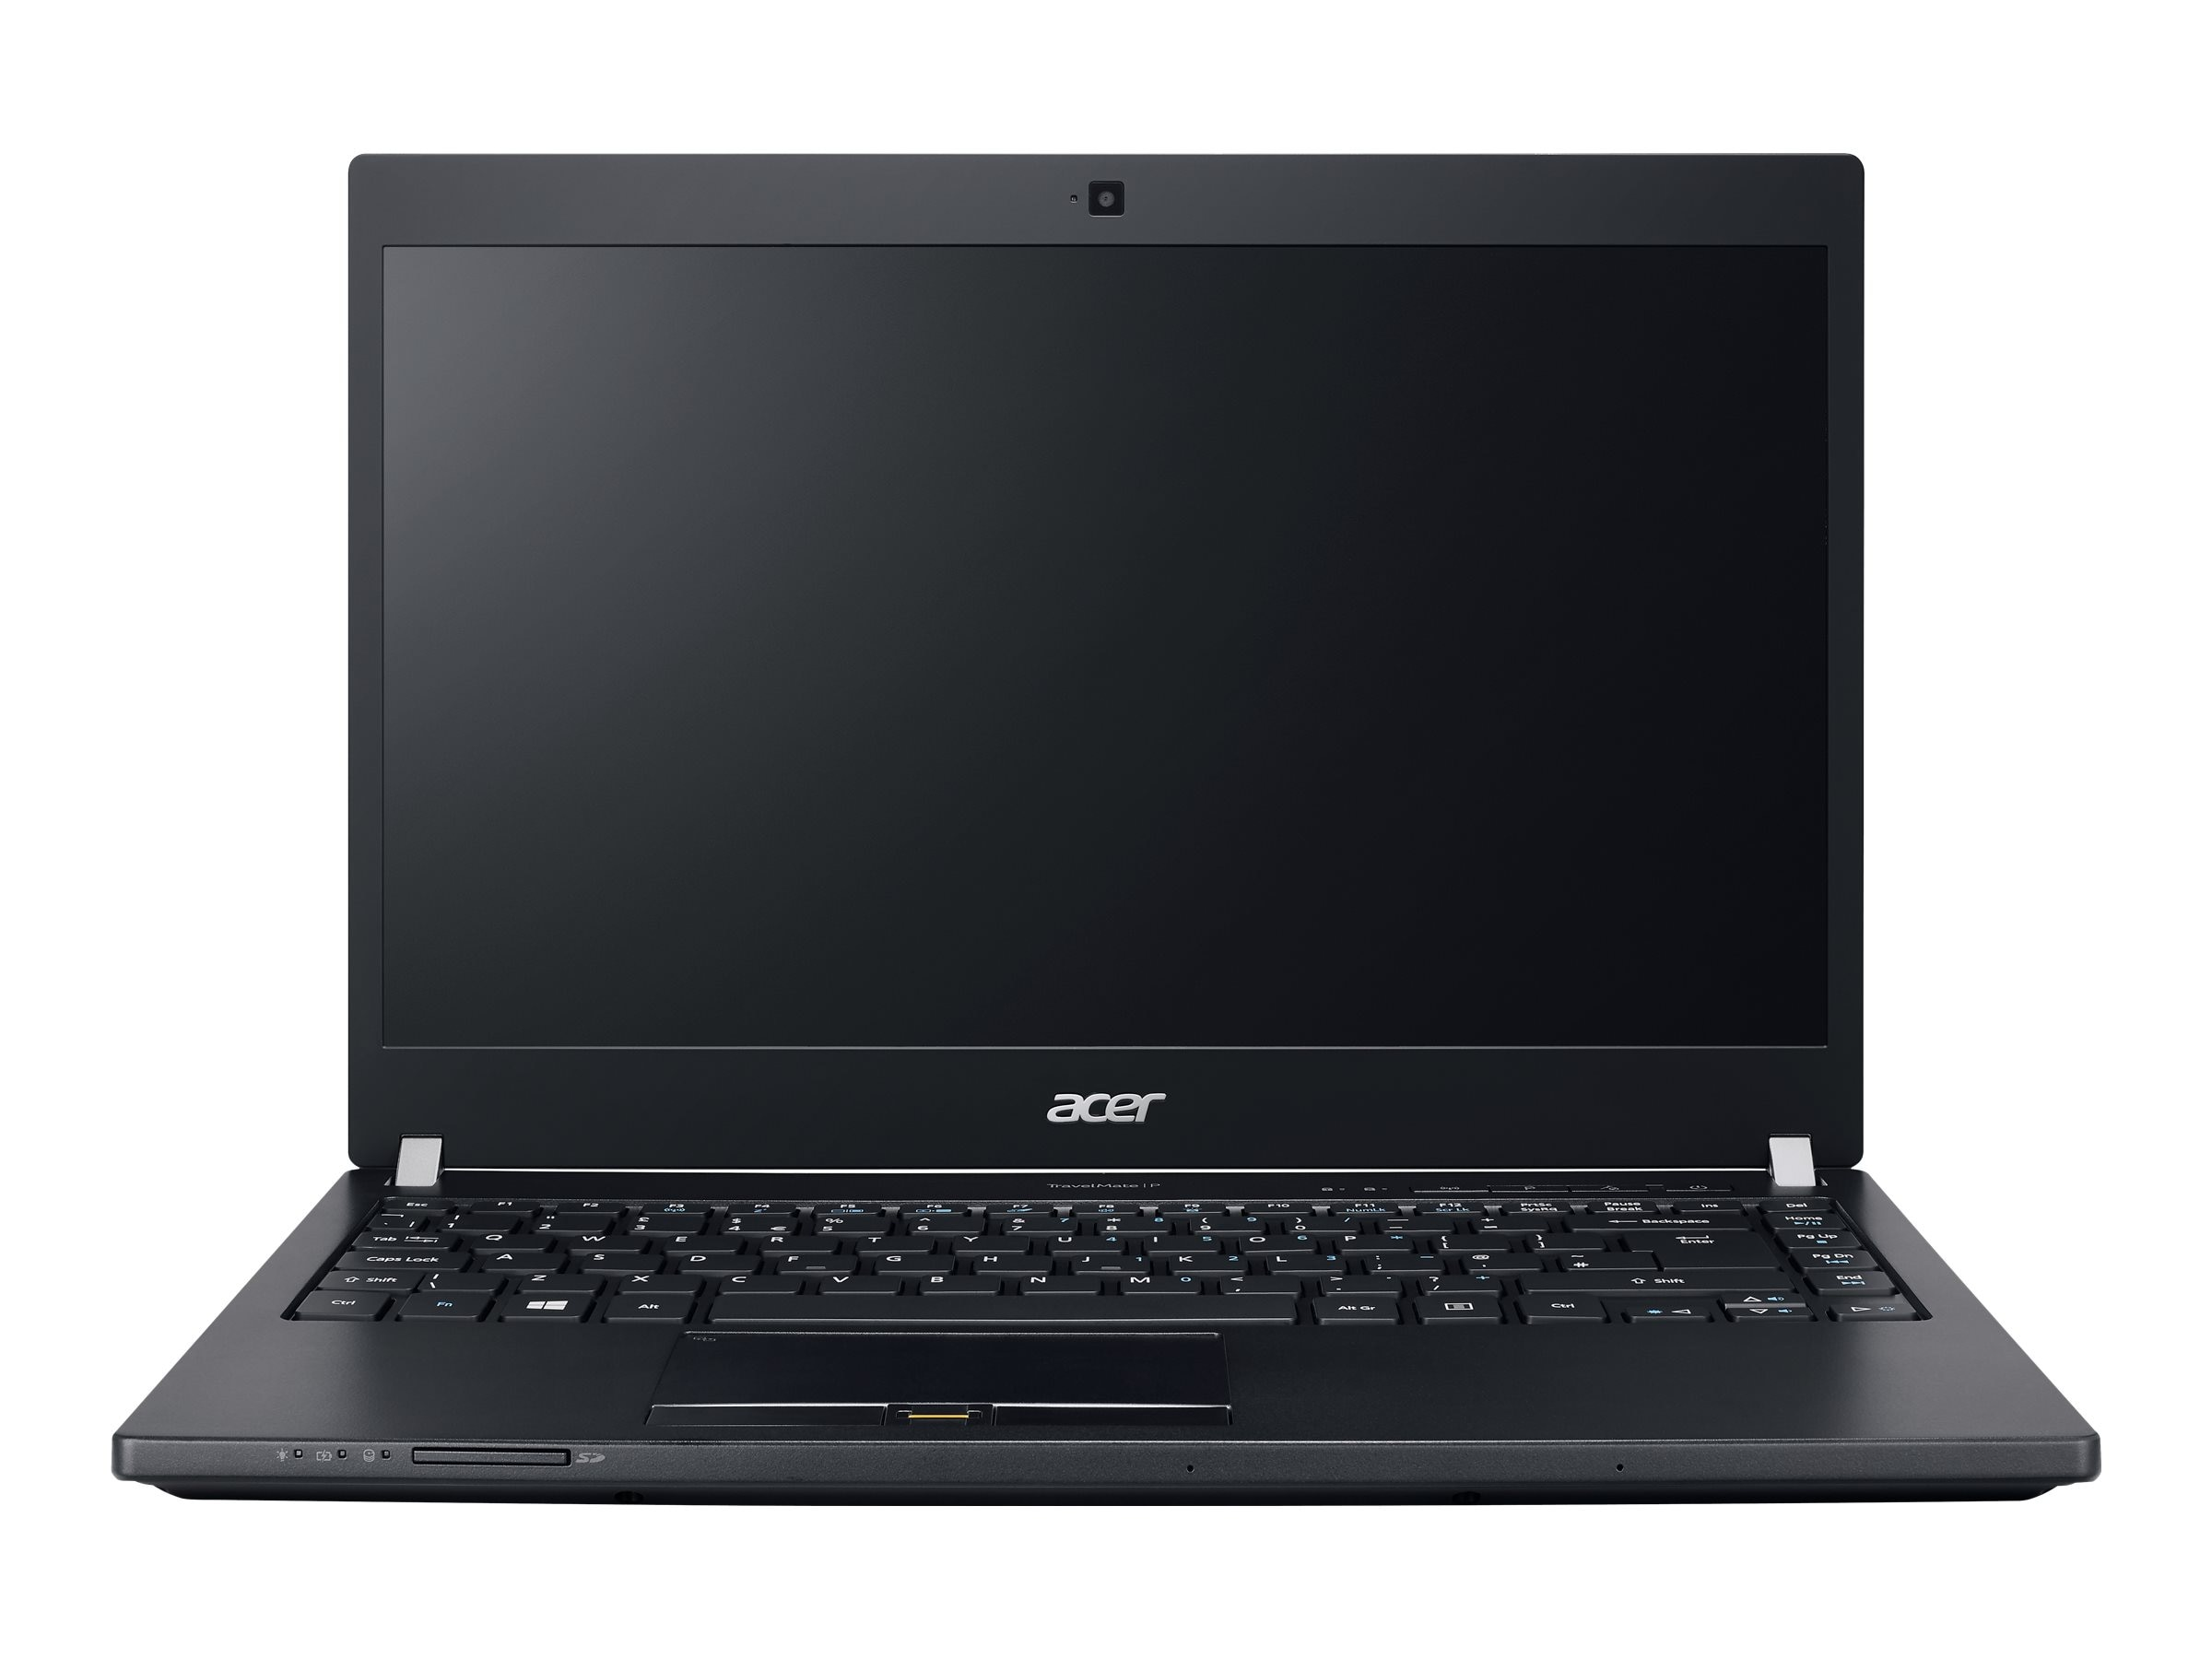 Acer Travelmate P658-M-700F 2.5GHz Core i7 14in display, NX.VCSAA.002